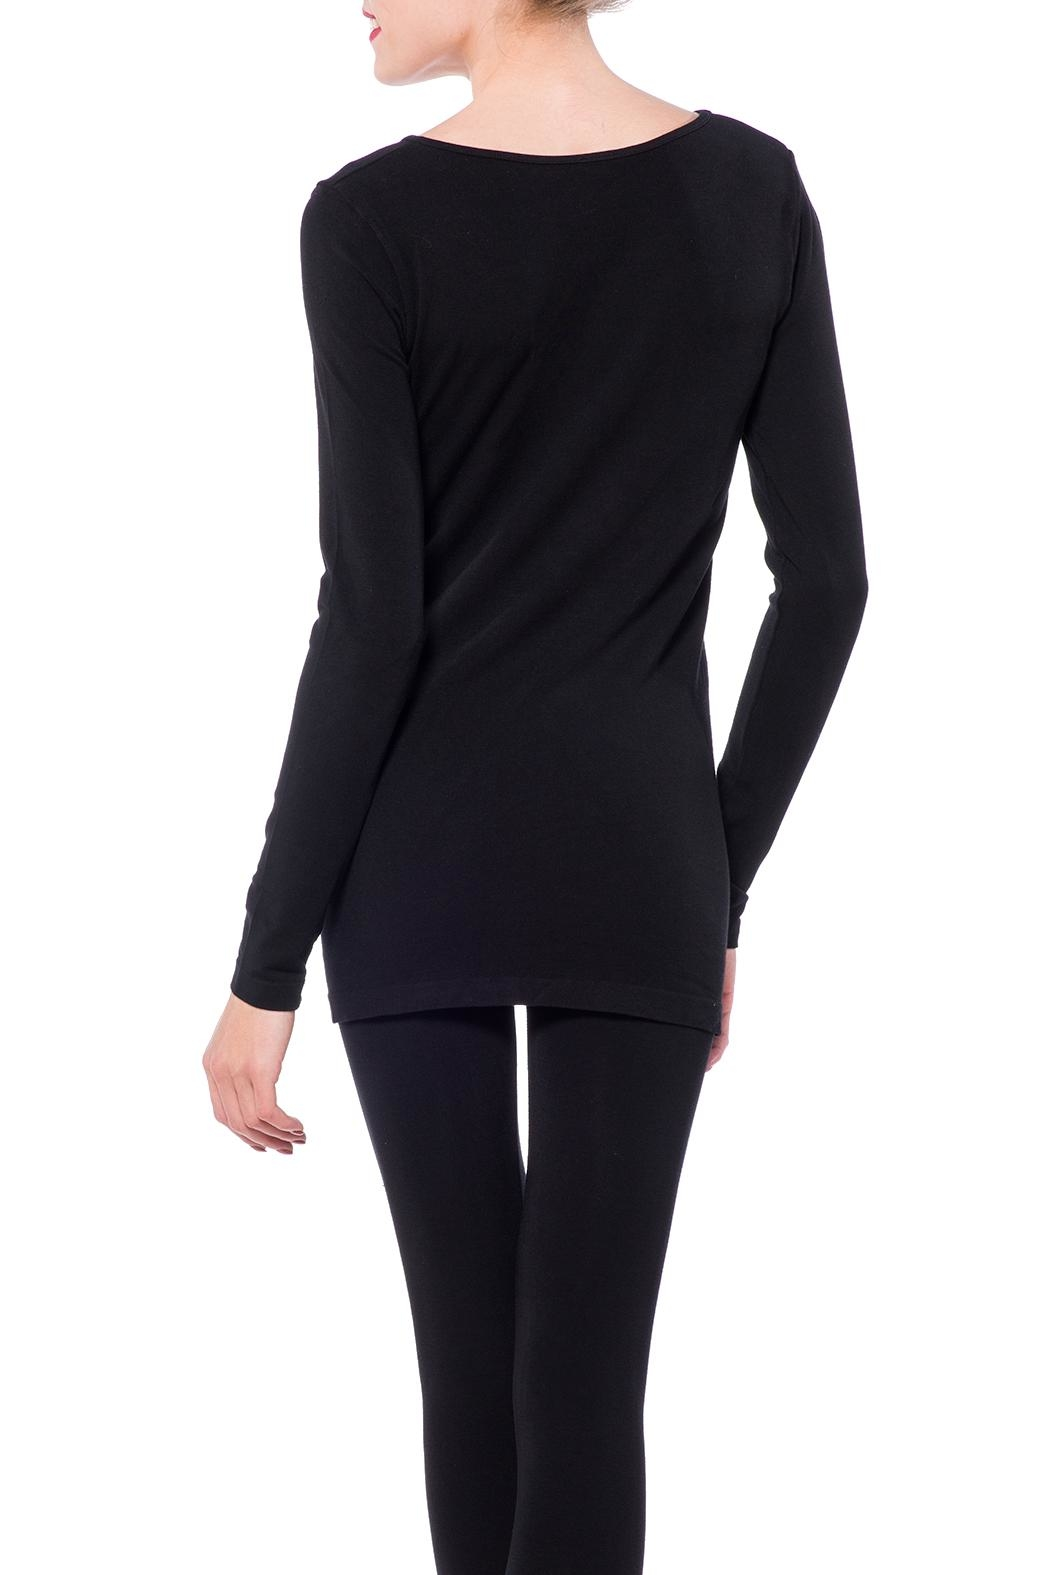 Cest Moi Bamboo Long Sleeve Top - Side Cropped Image